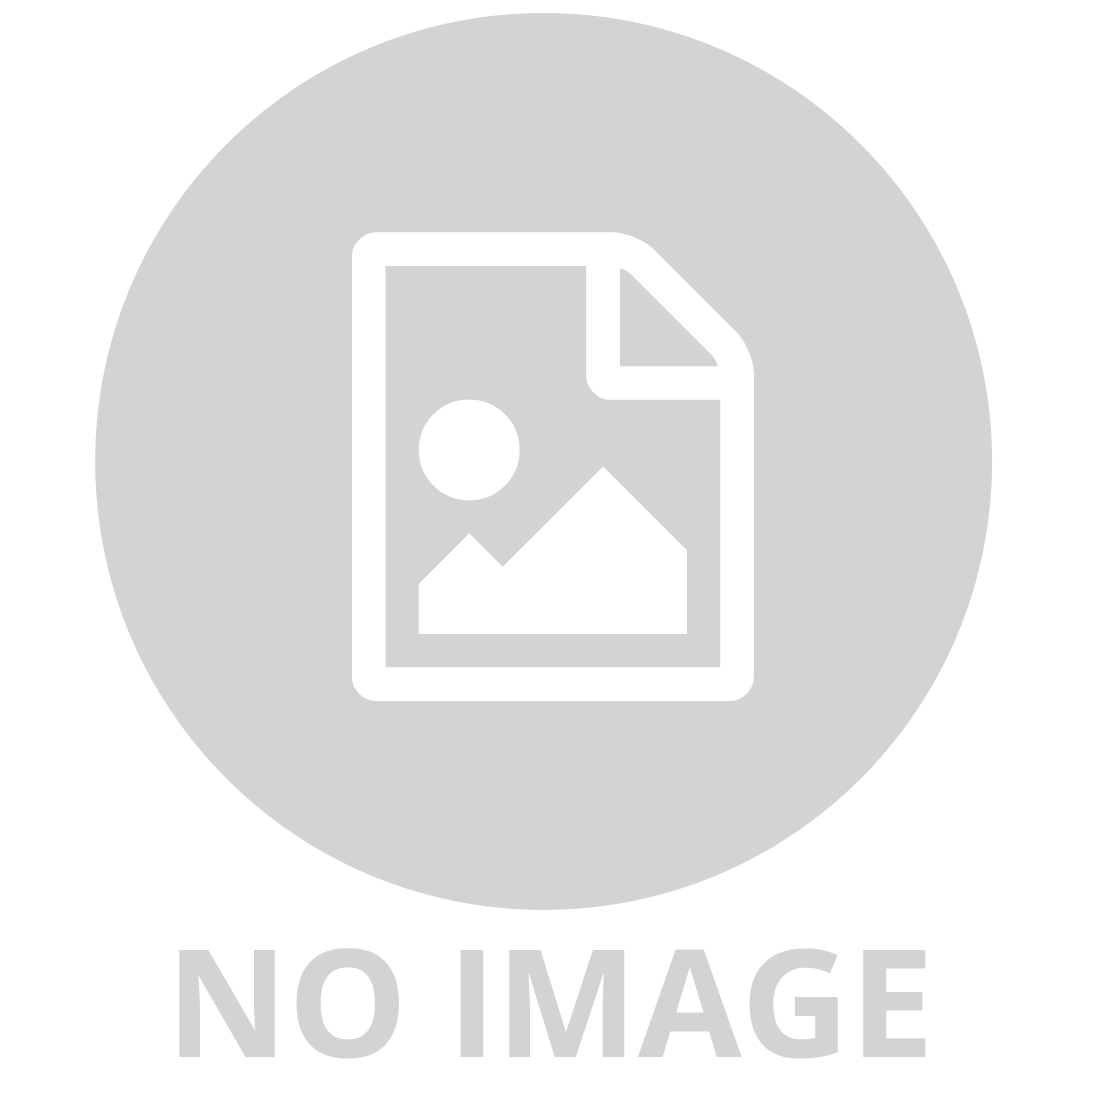 THE GREATEST DOT TO DOT CLASSIC SERIES BOOK 1